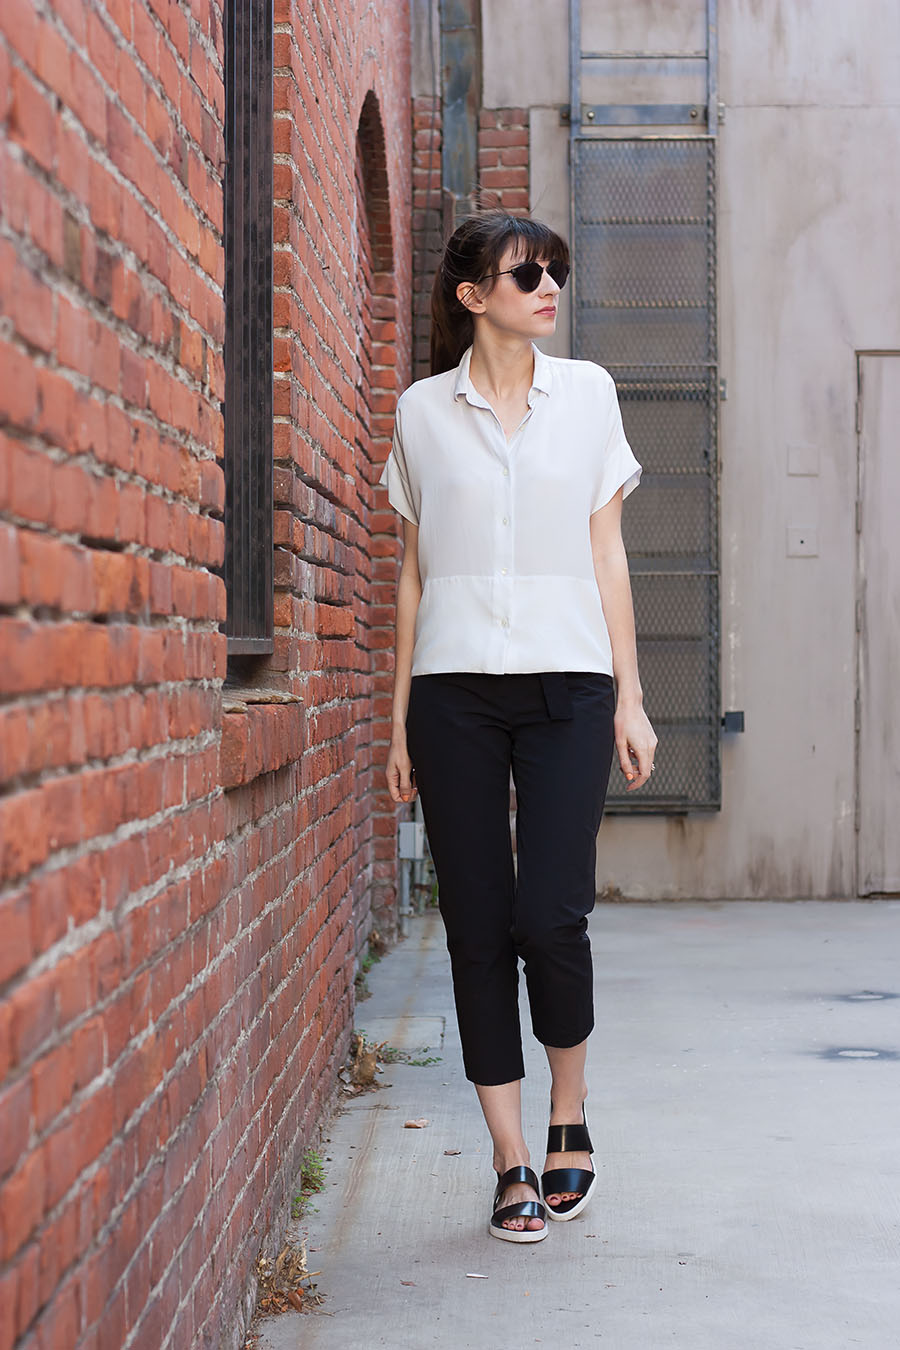 Square Silk Shirt, Everlane Outfit, Minimalist Outfit, Black and White Outfit